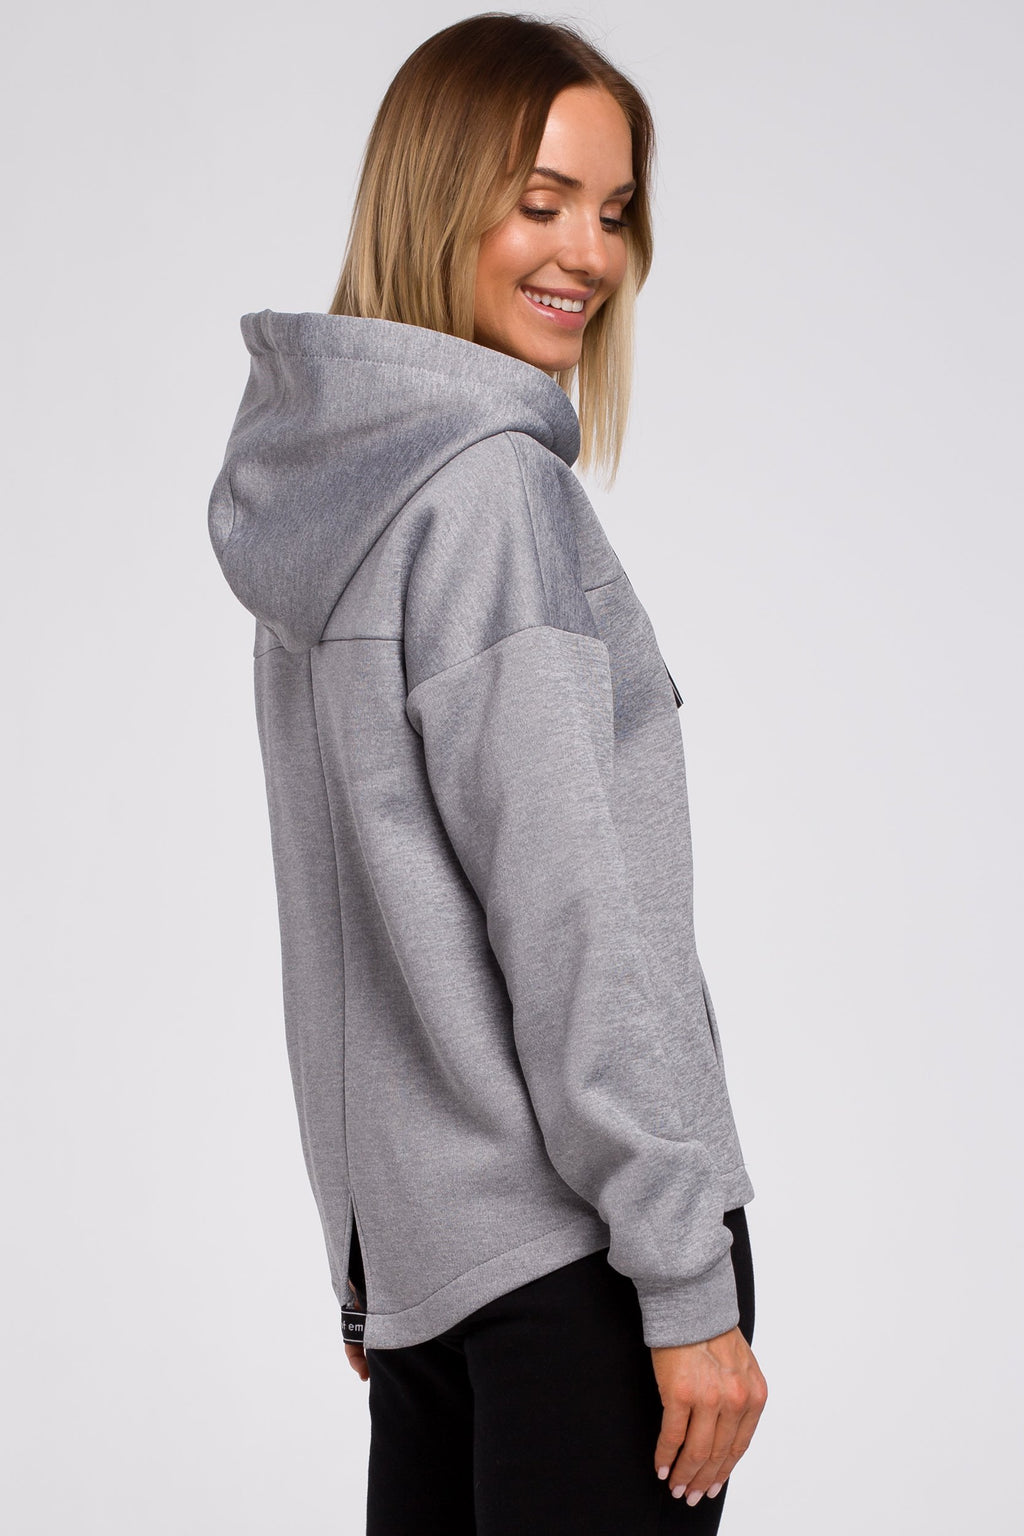 Grey Hoodie With A Zip - So Chic Boutique